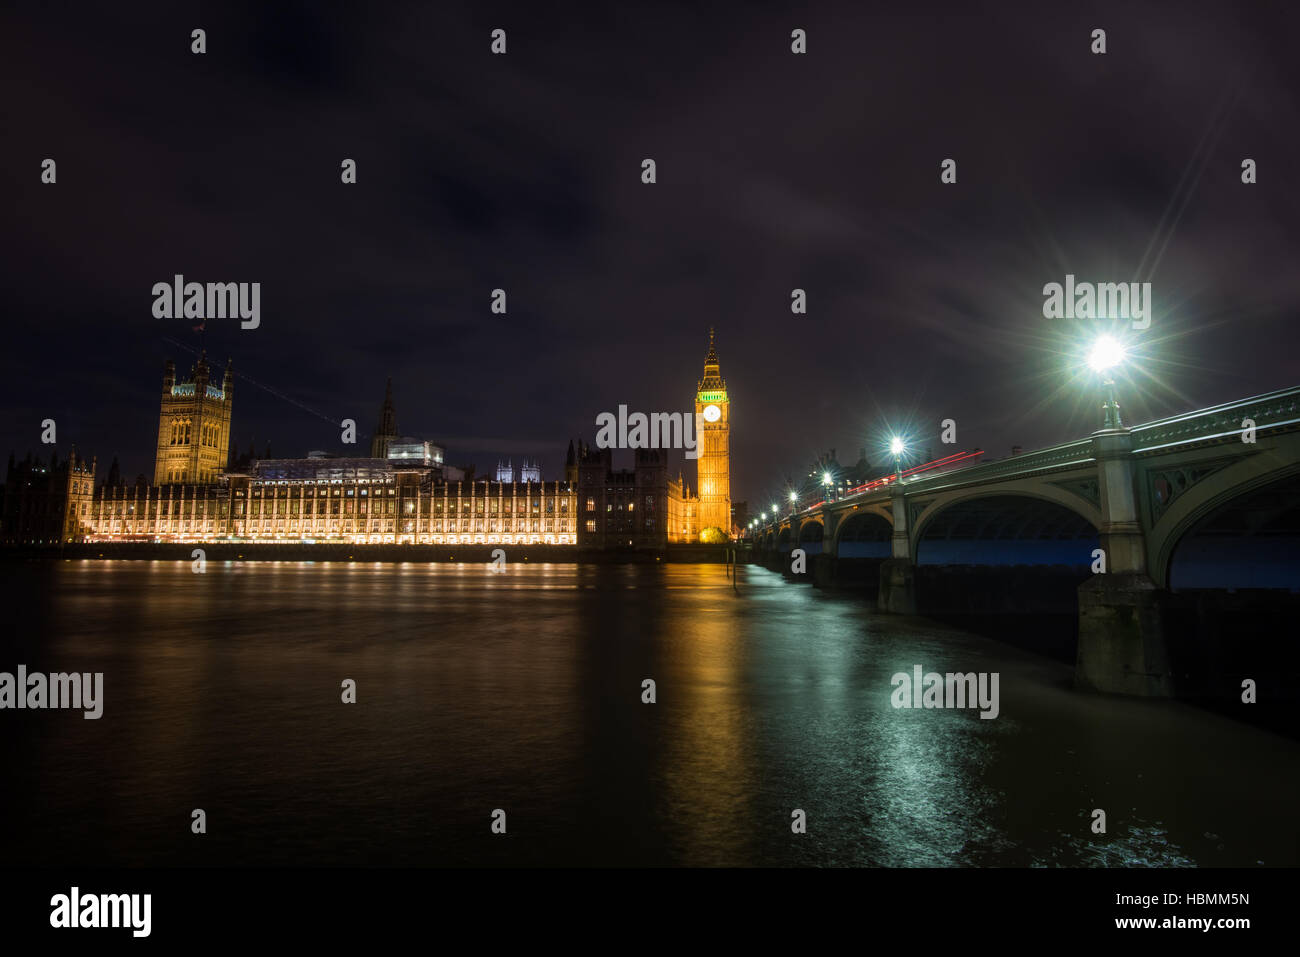 Big Ben and Houses of Parliament at Night, London, United kingdom - Stock Image